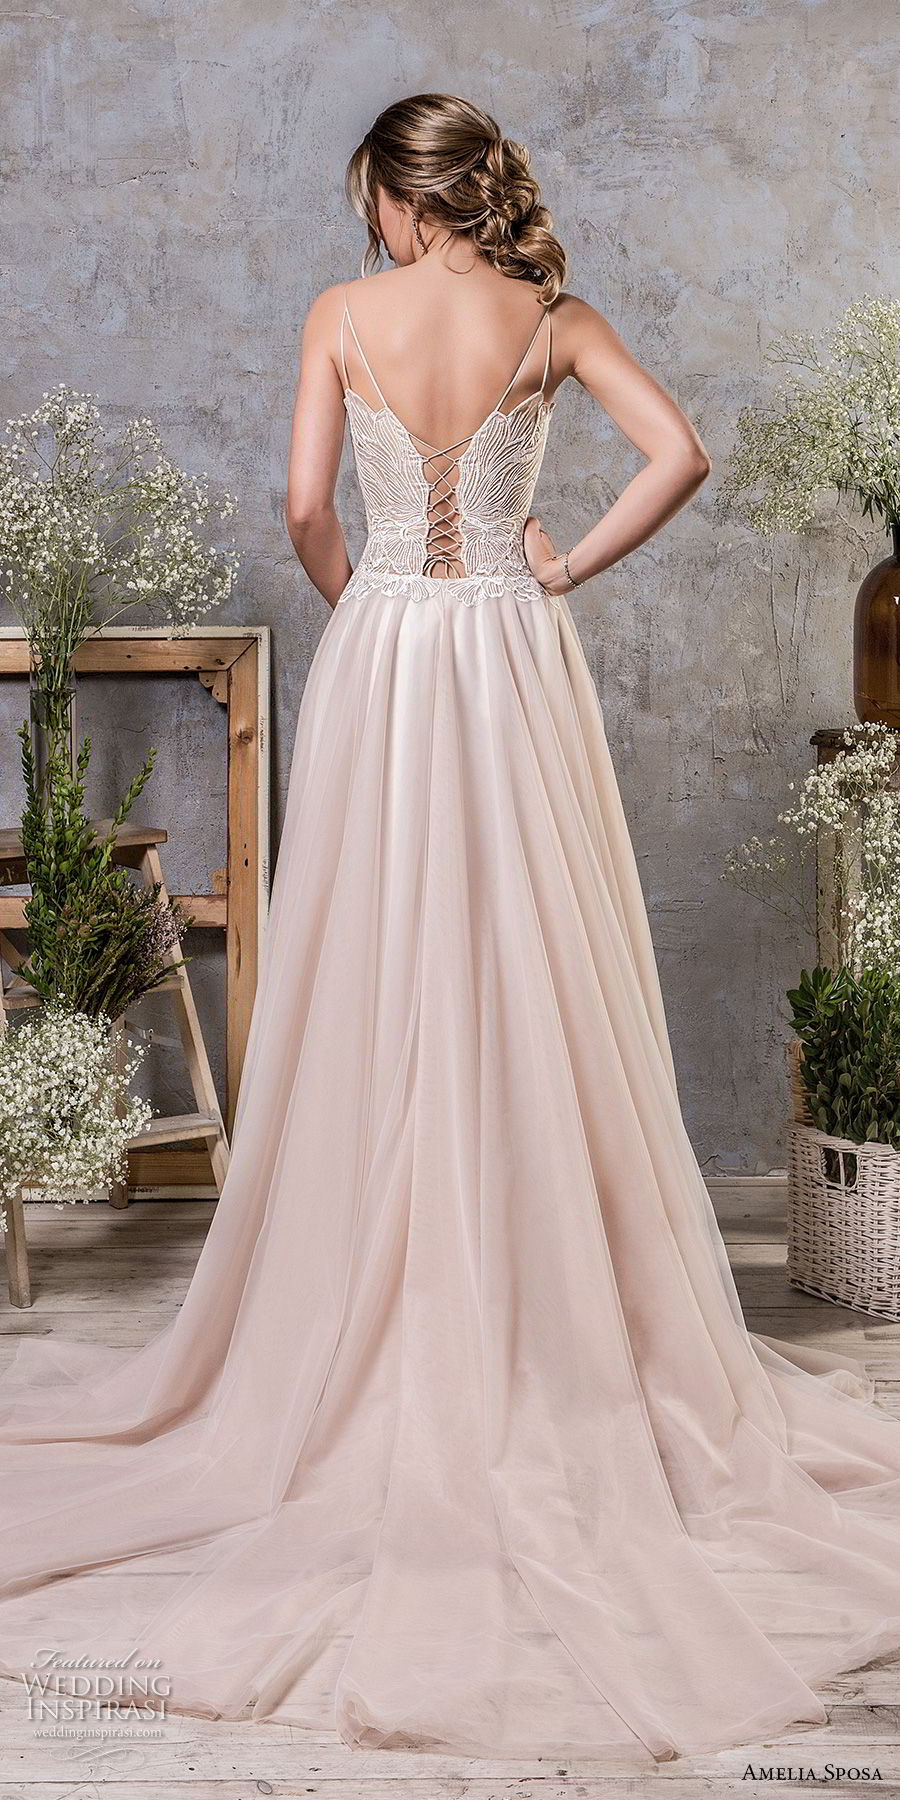 amelia sposa fall 2018 bridal spaghetti strap deep sweetheart neckline heavily embellished bodice romantic blush a line wedding dress corset back chapel train (15) bv